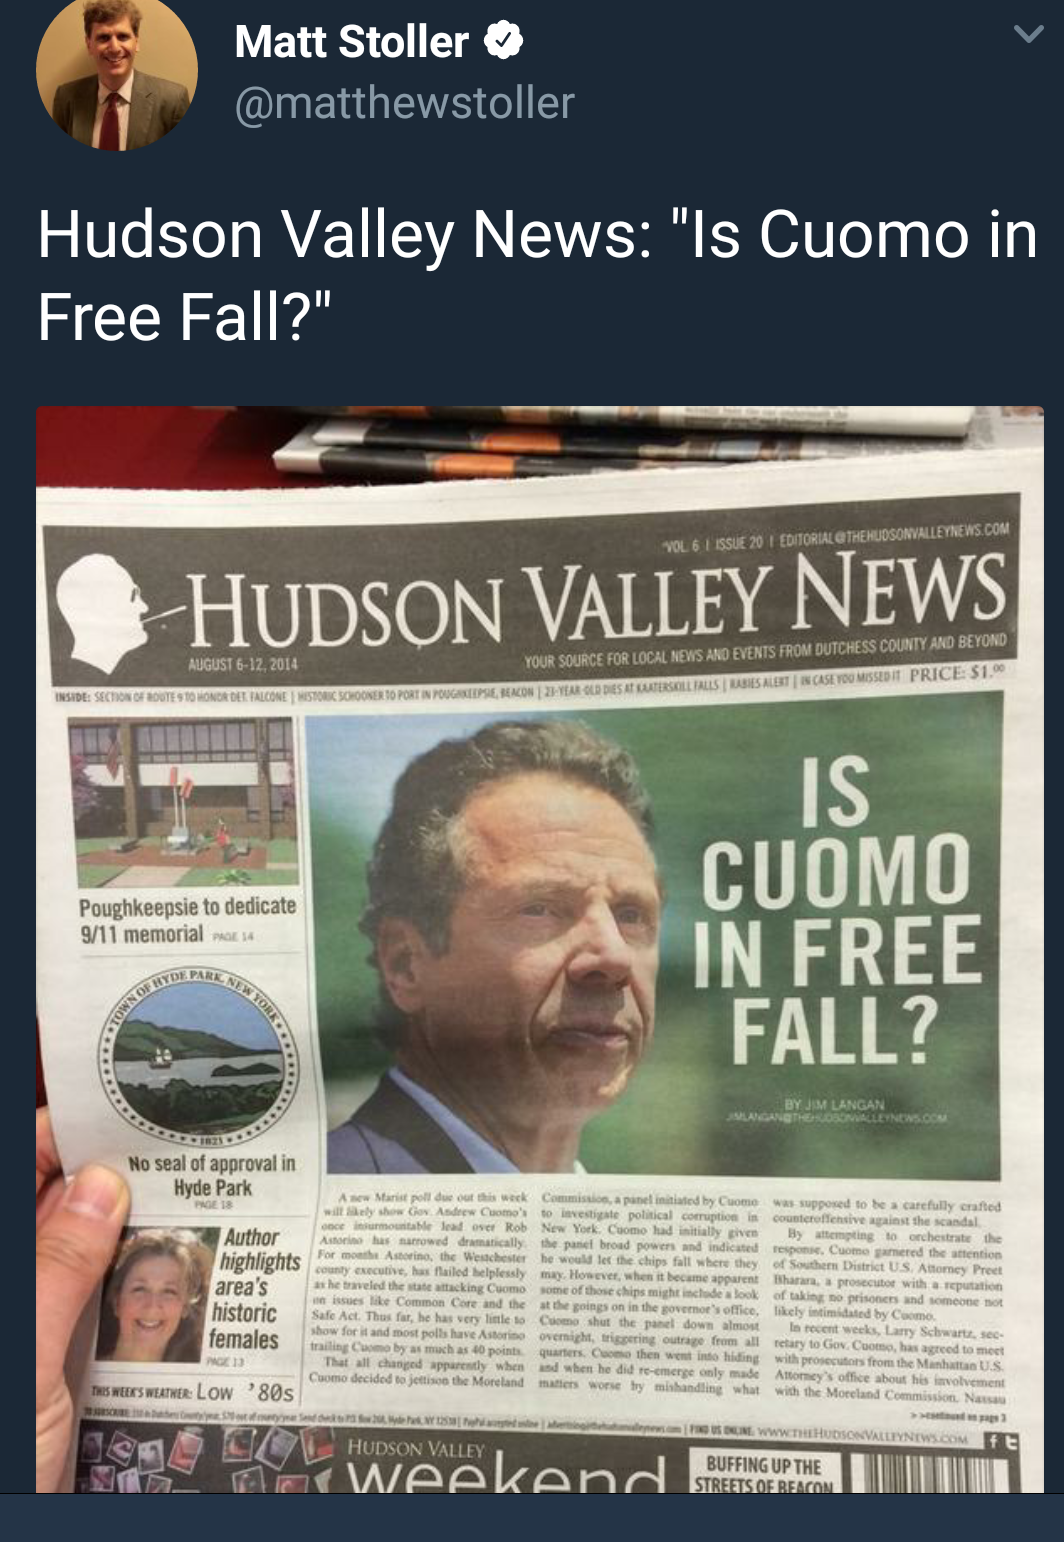 Hudson Valley News: Is Cuomo in Free Fall?